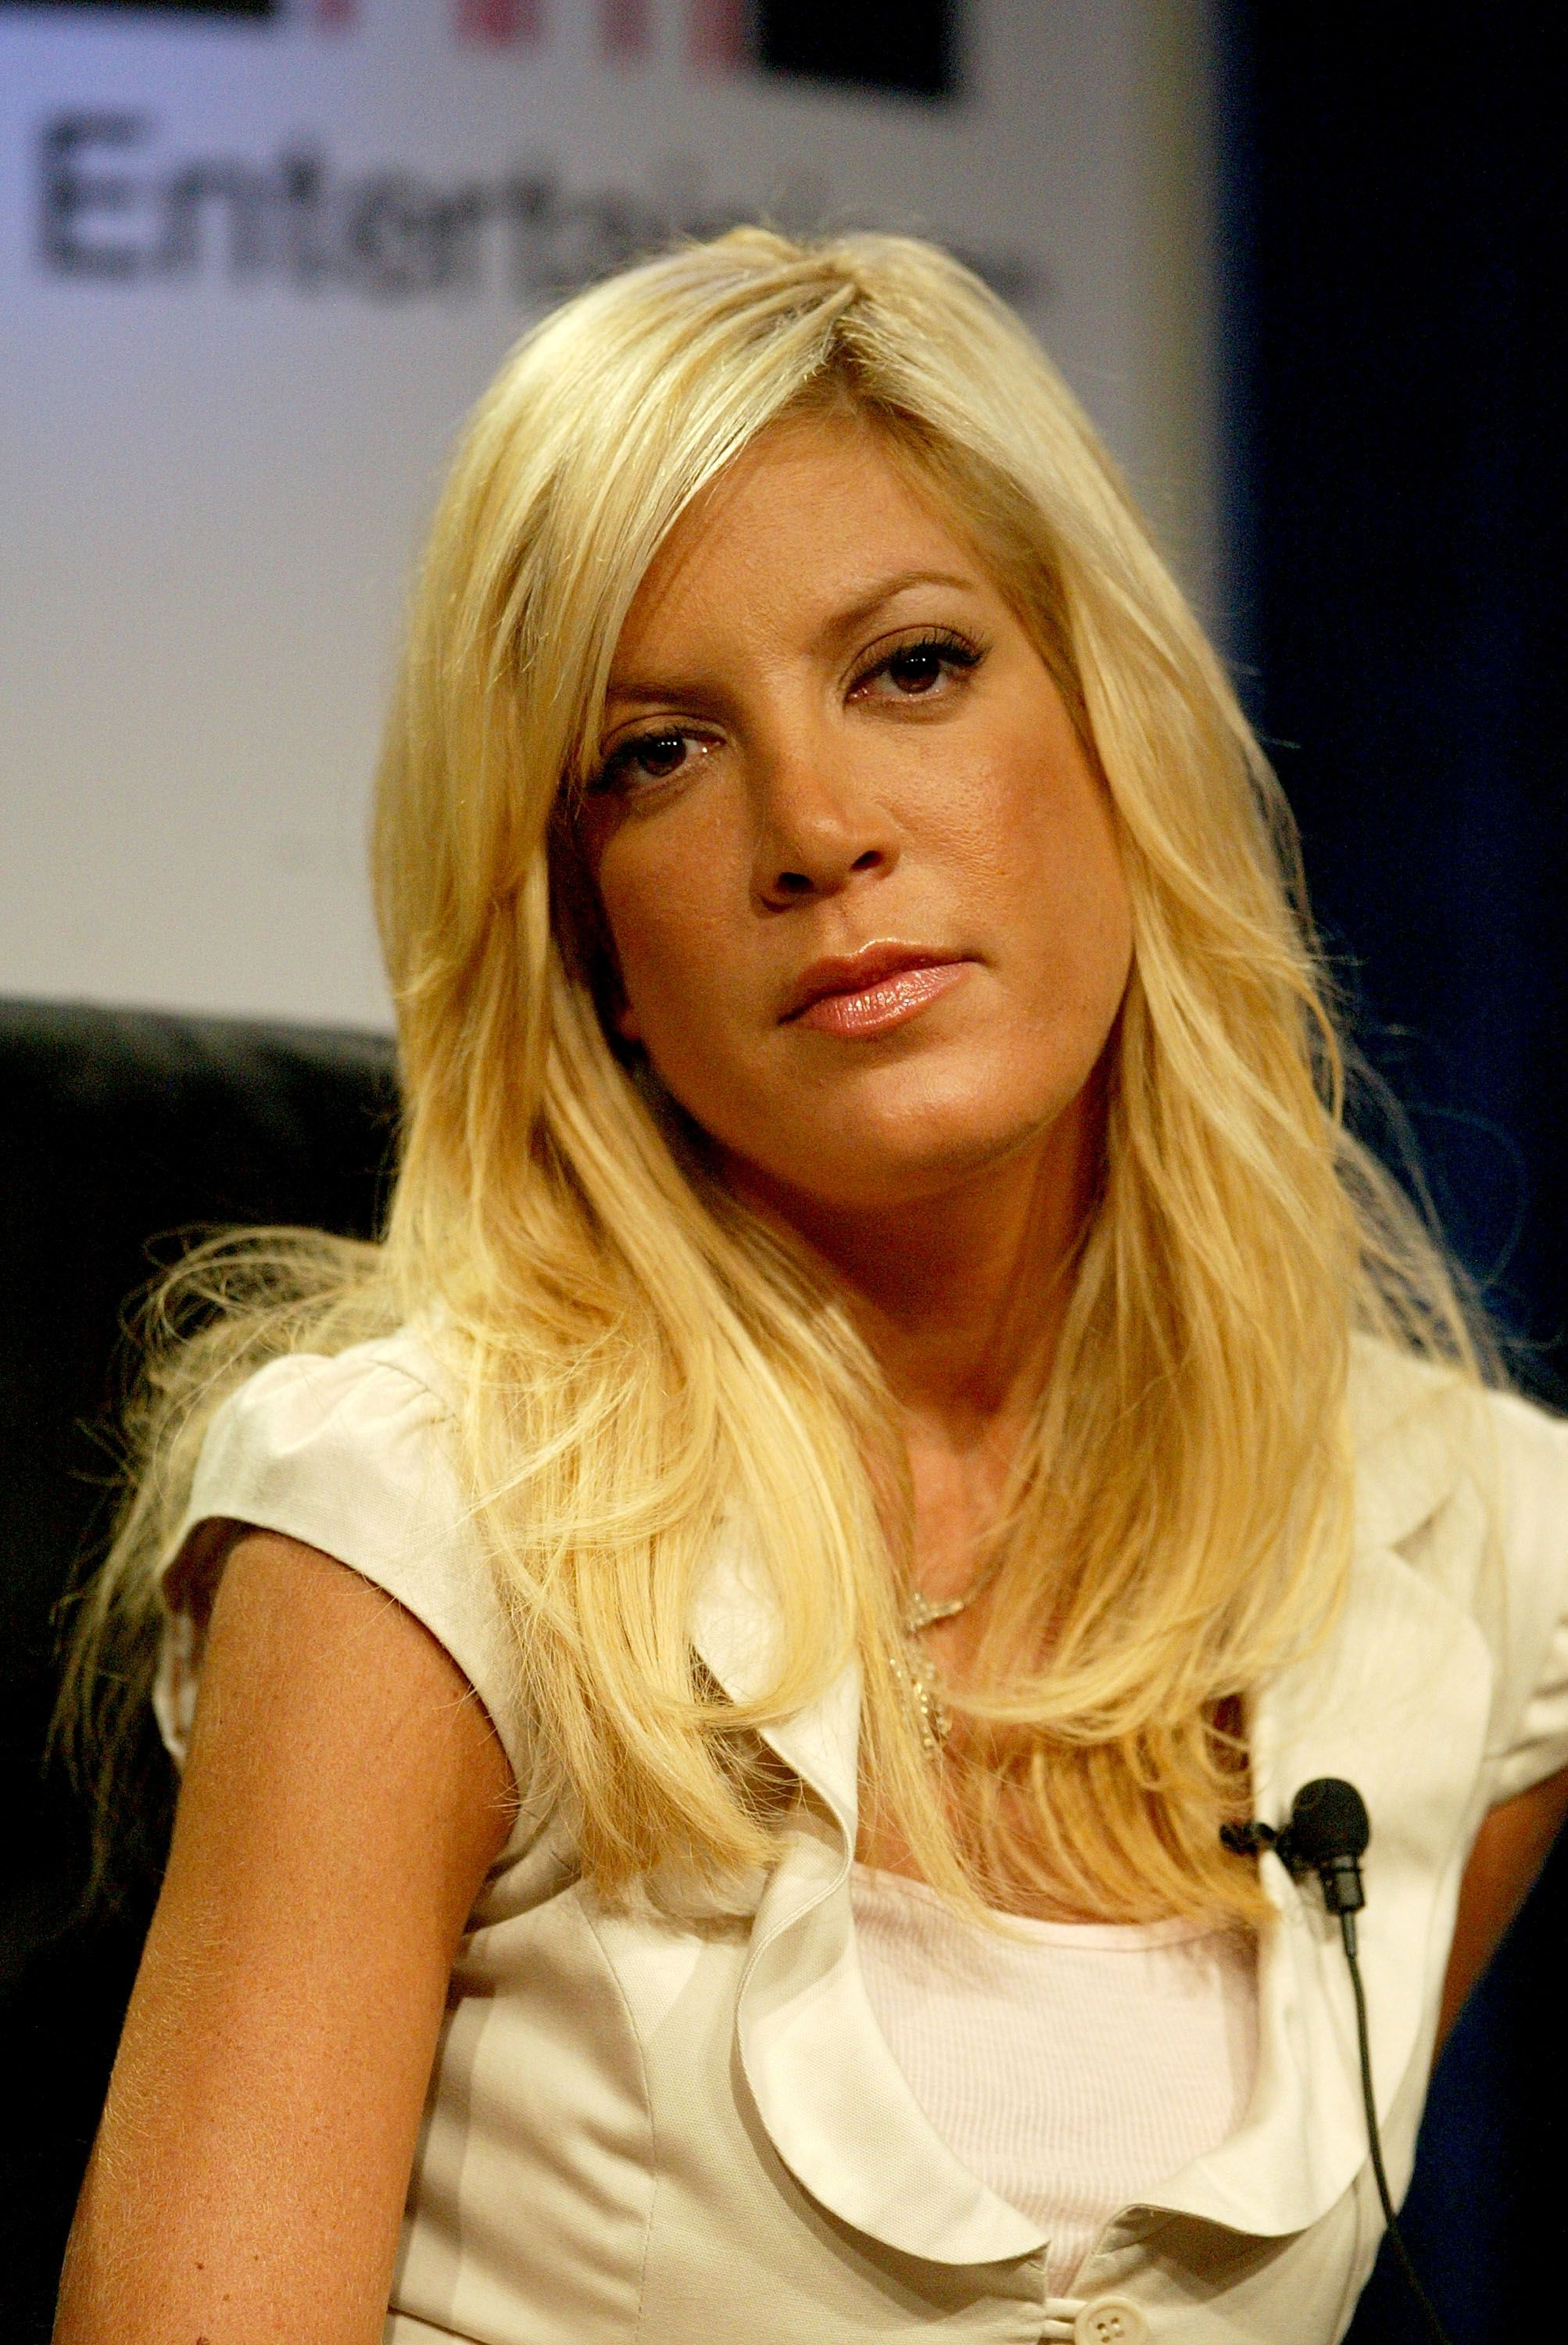 L'actrice Tori Spelling, le 14 juillet 2005 à Beverly Hills, Californie. | Photo : Getty Images